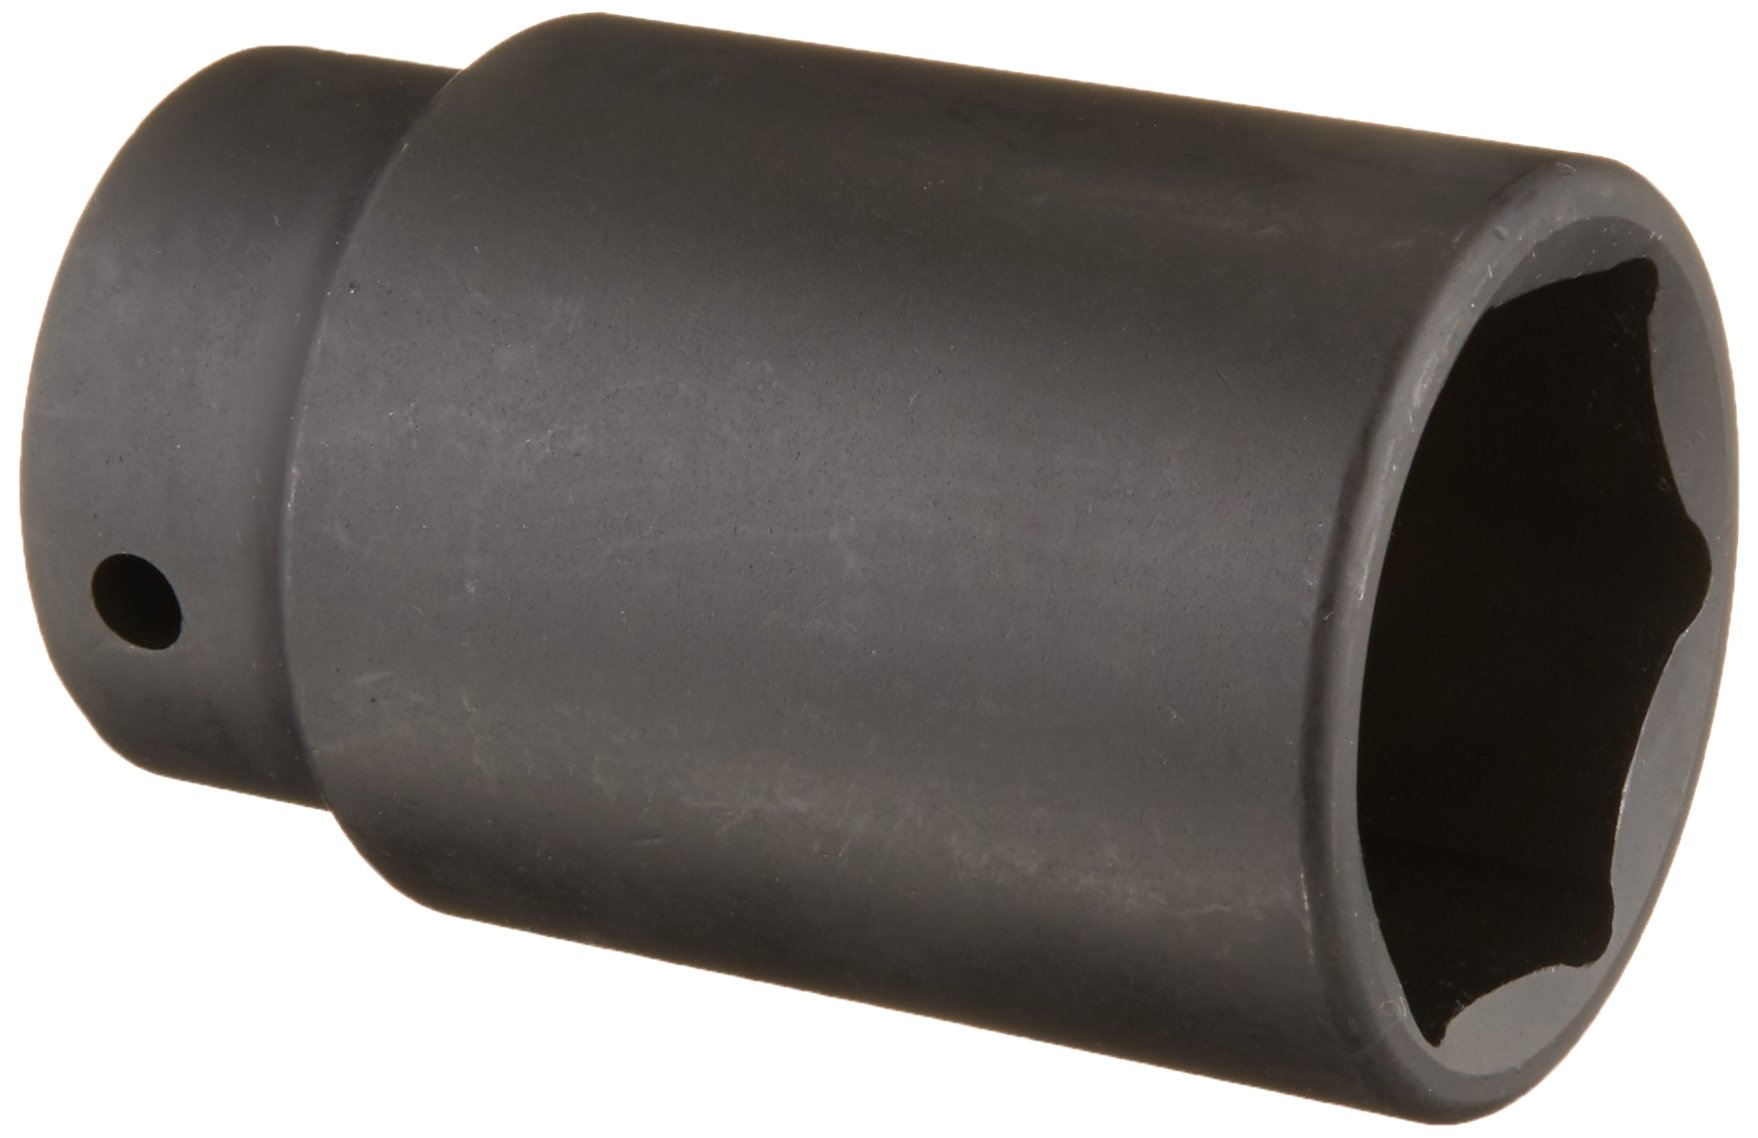 DEWALT DWMT75101OSP 6 Point 1/2'' Drive Deep Impact Socket 1-3/8'' SAE